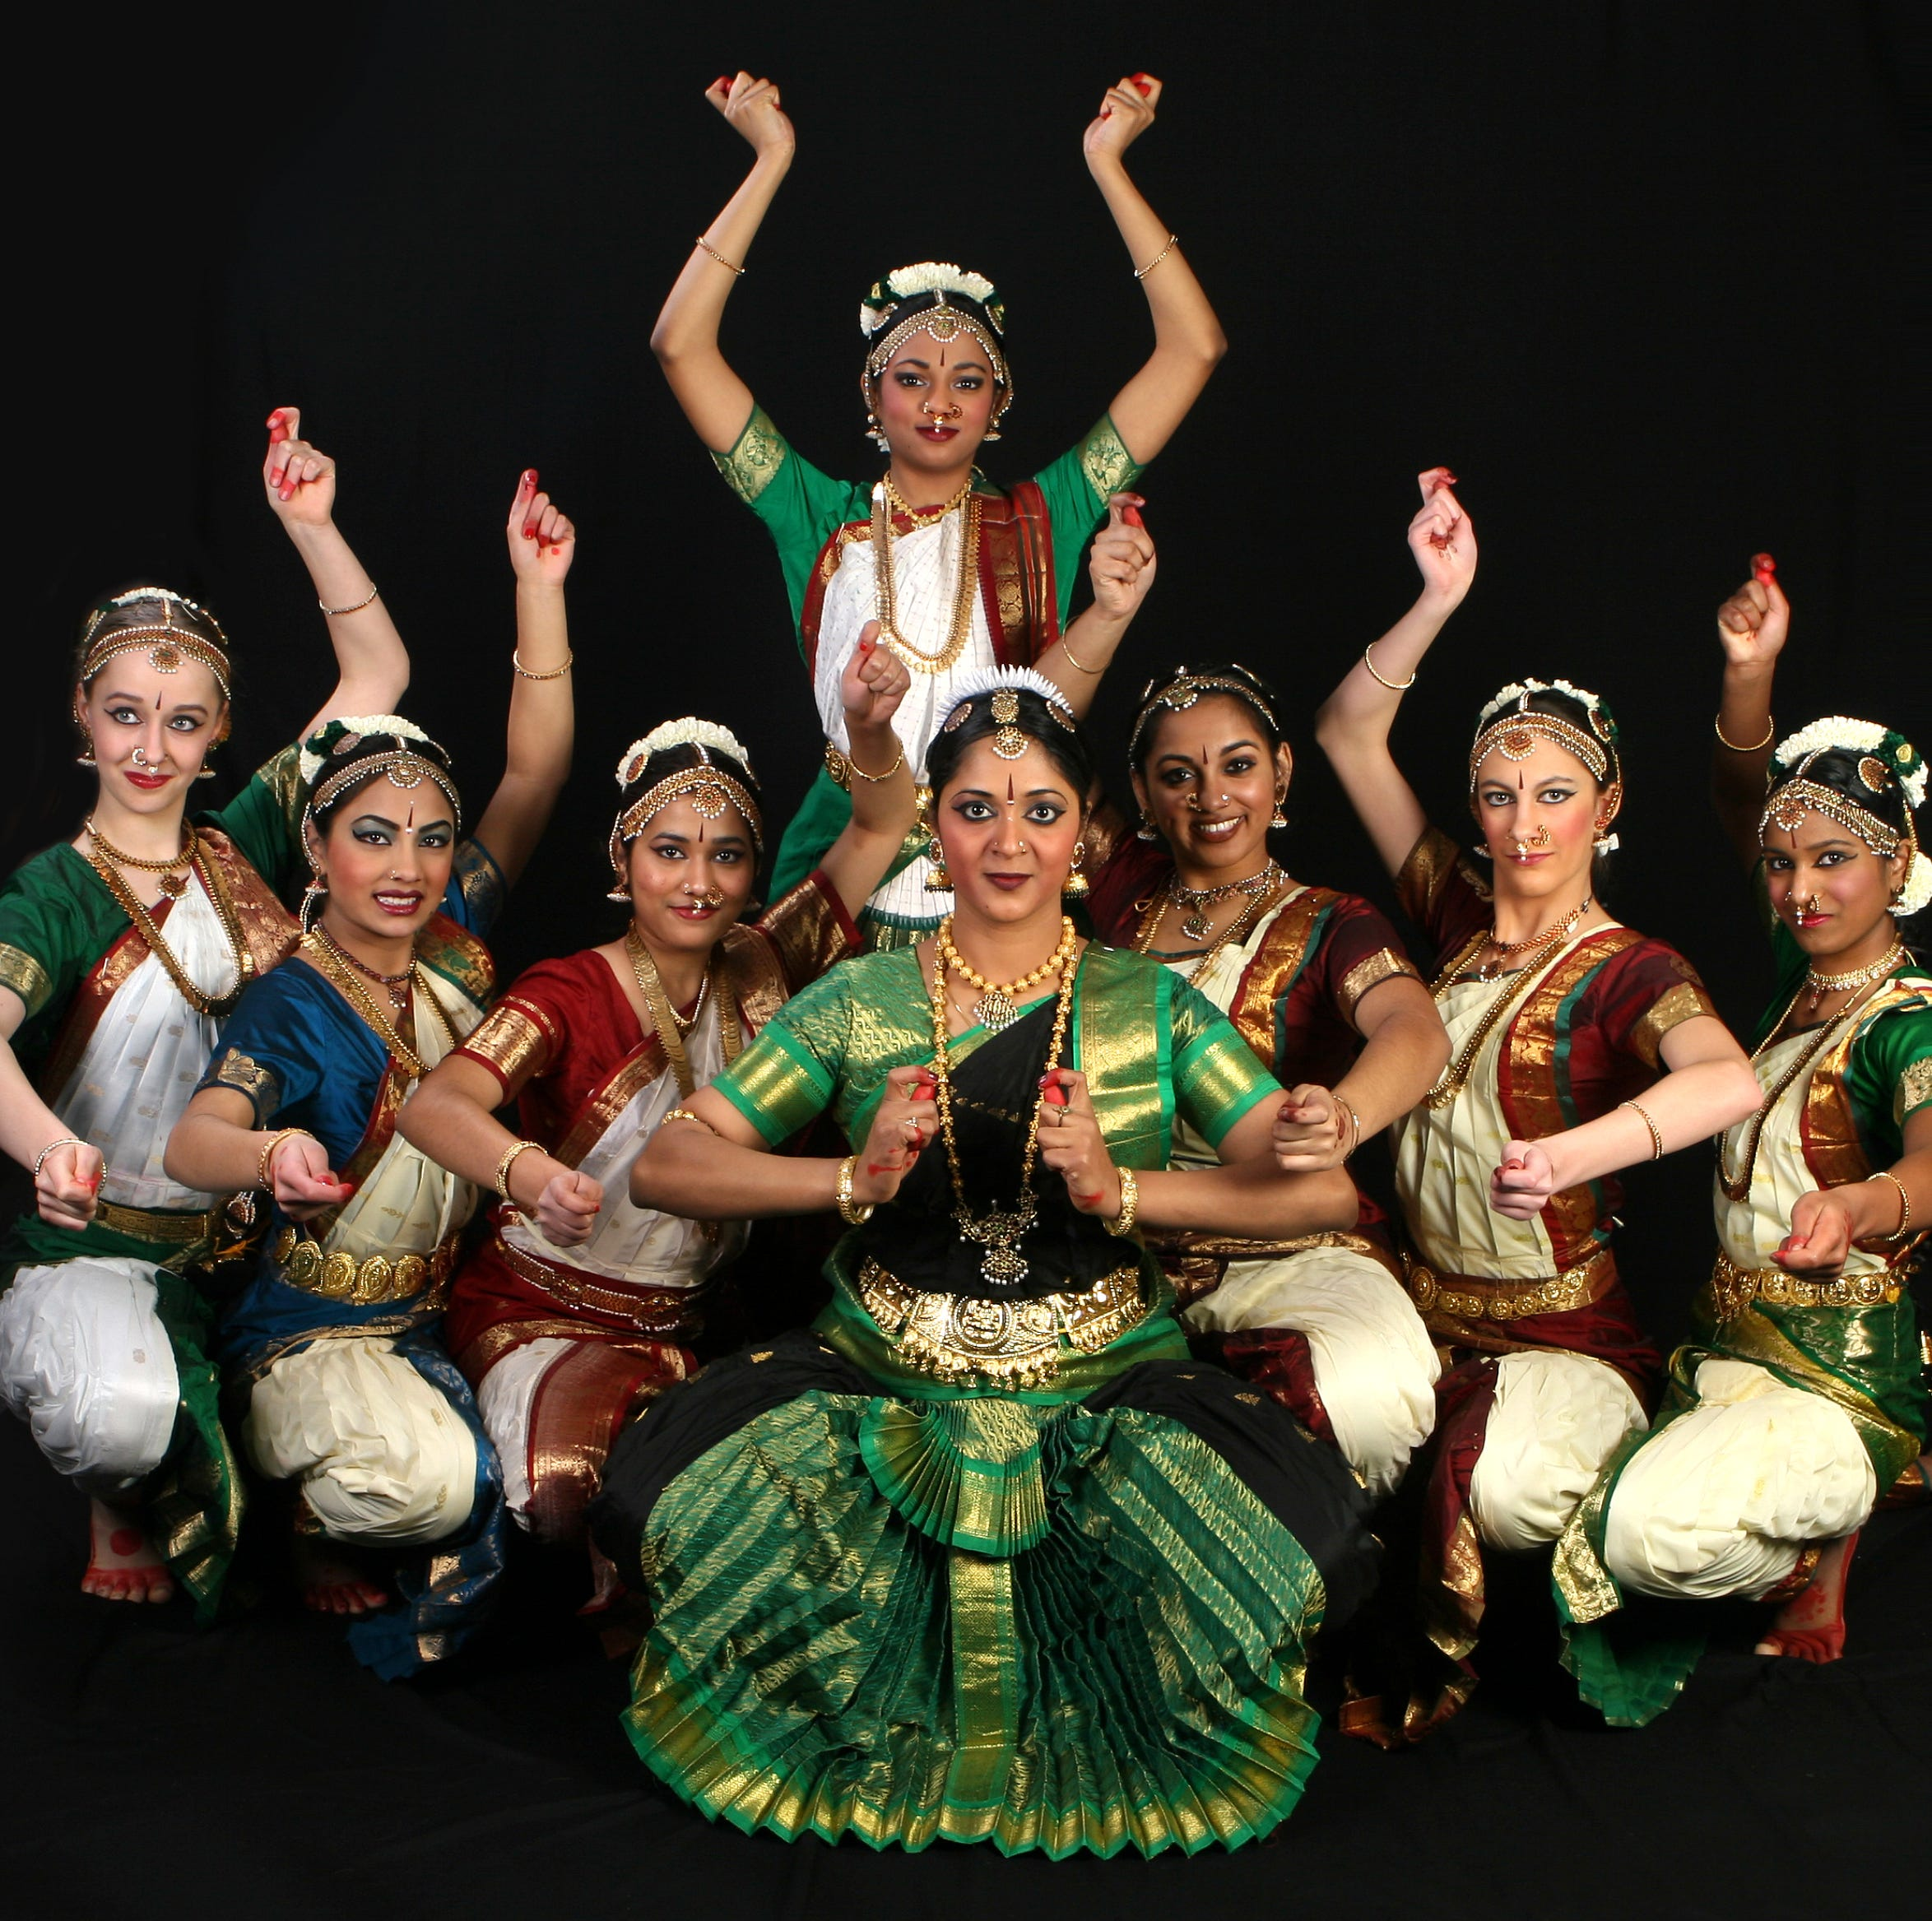 Festival of India celebrates culture, community, and raises money to empower women